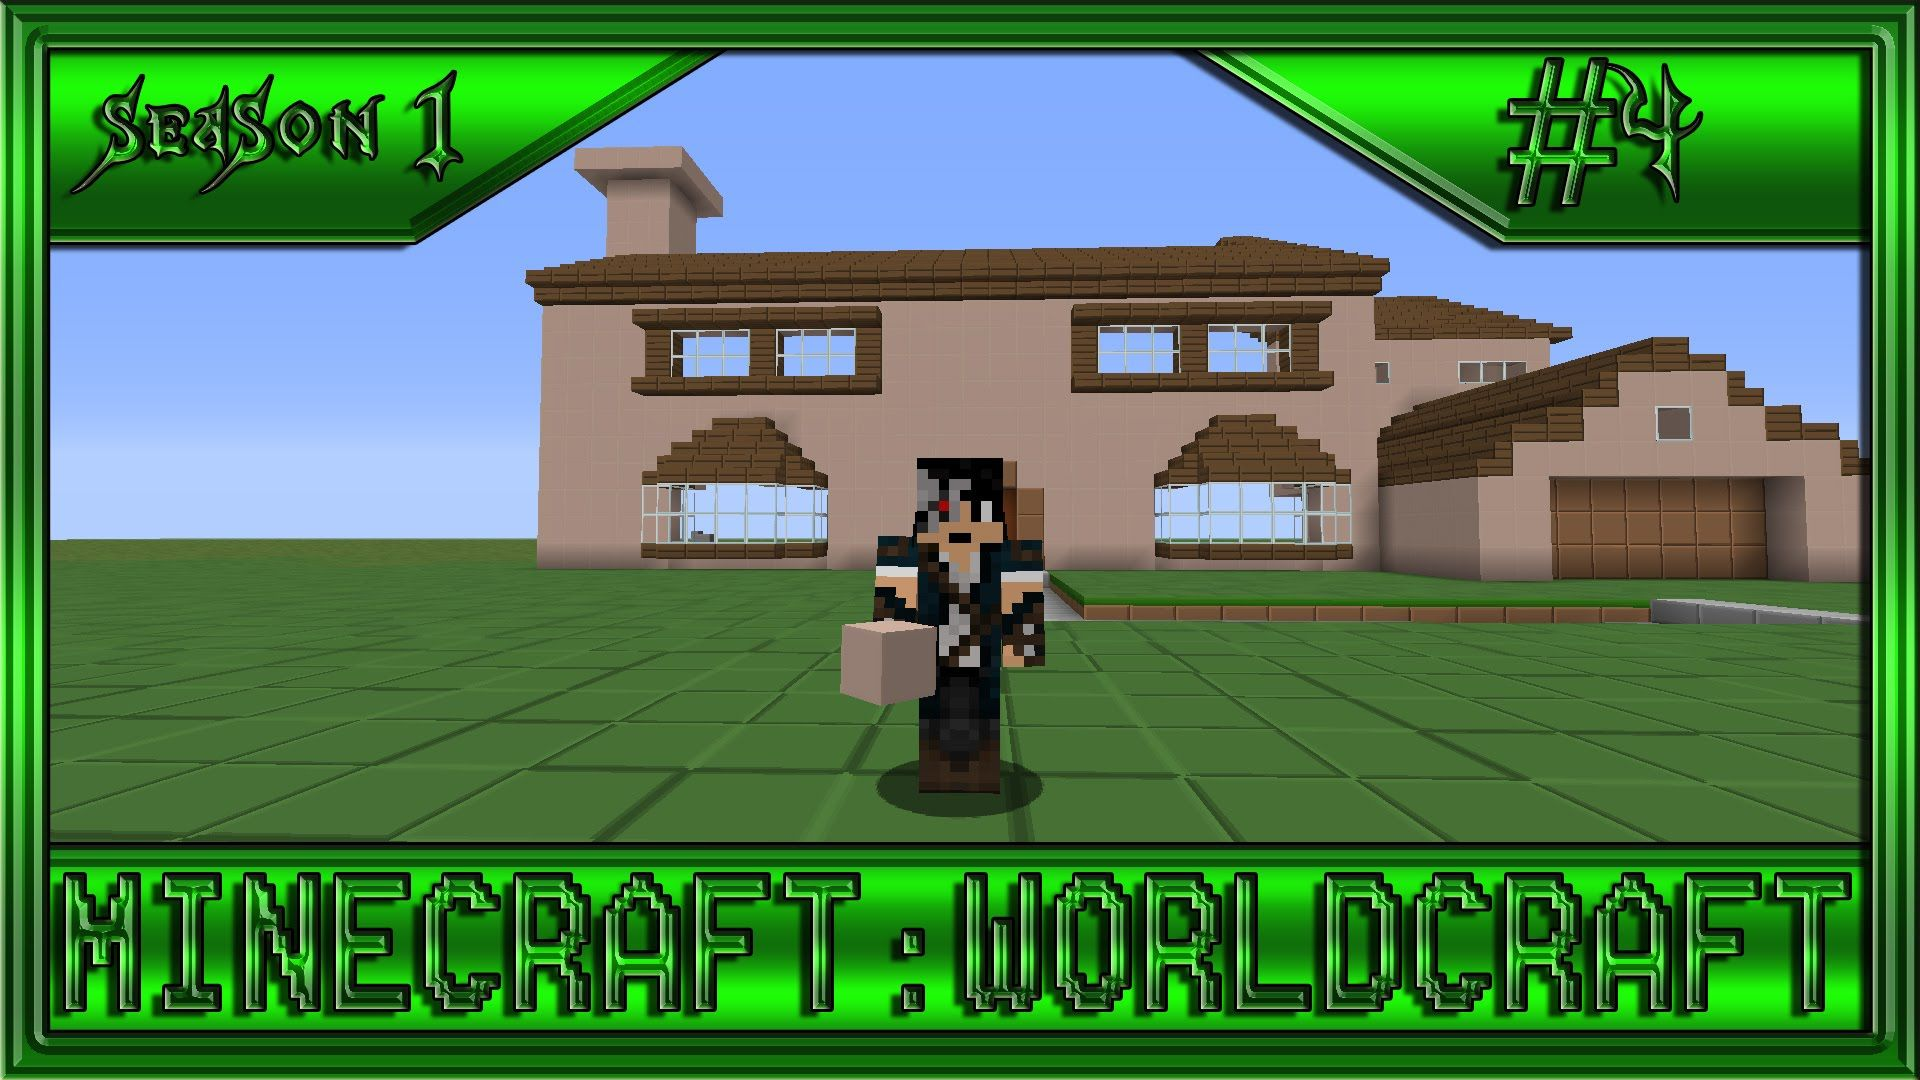 MINECRAFT WORLDCRAFT 2 THE SIMPSONS HOUSE PART 1 MINECRAFT WORLDCRAFT SEASON 1